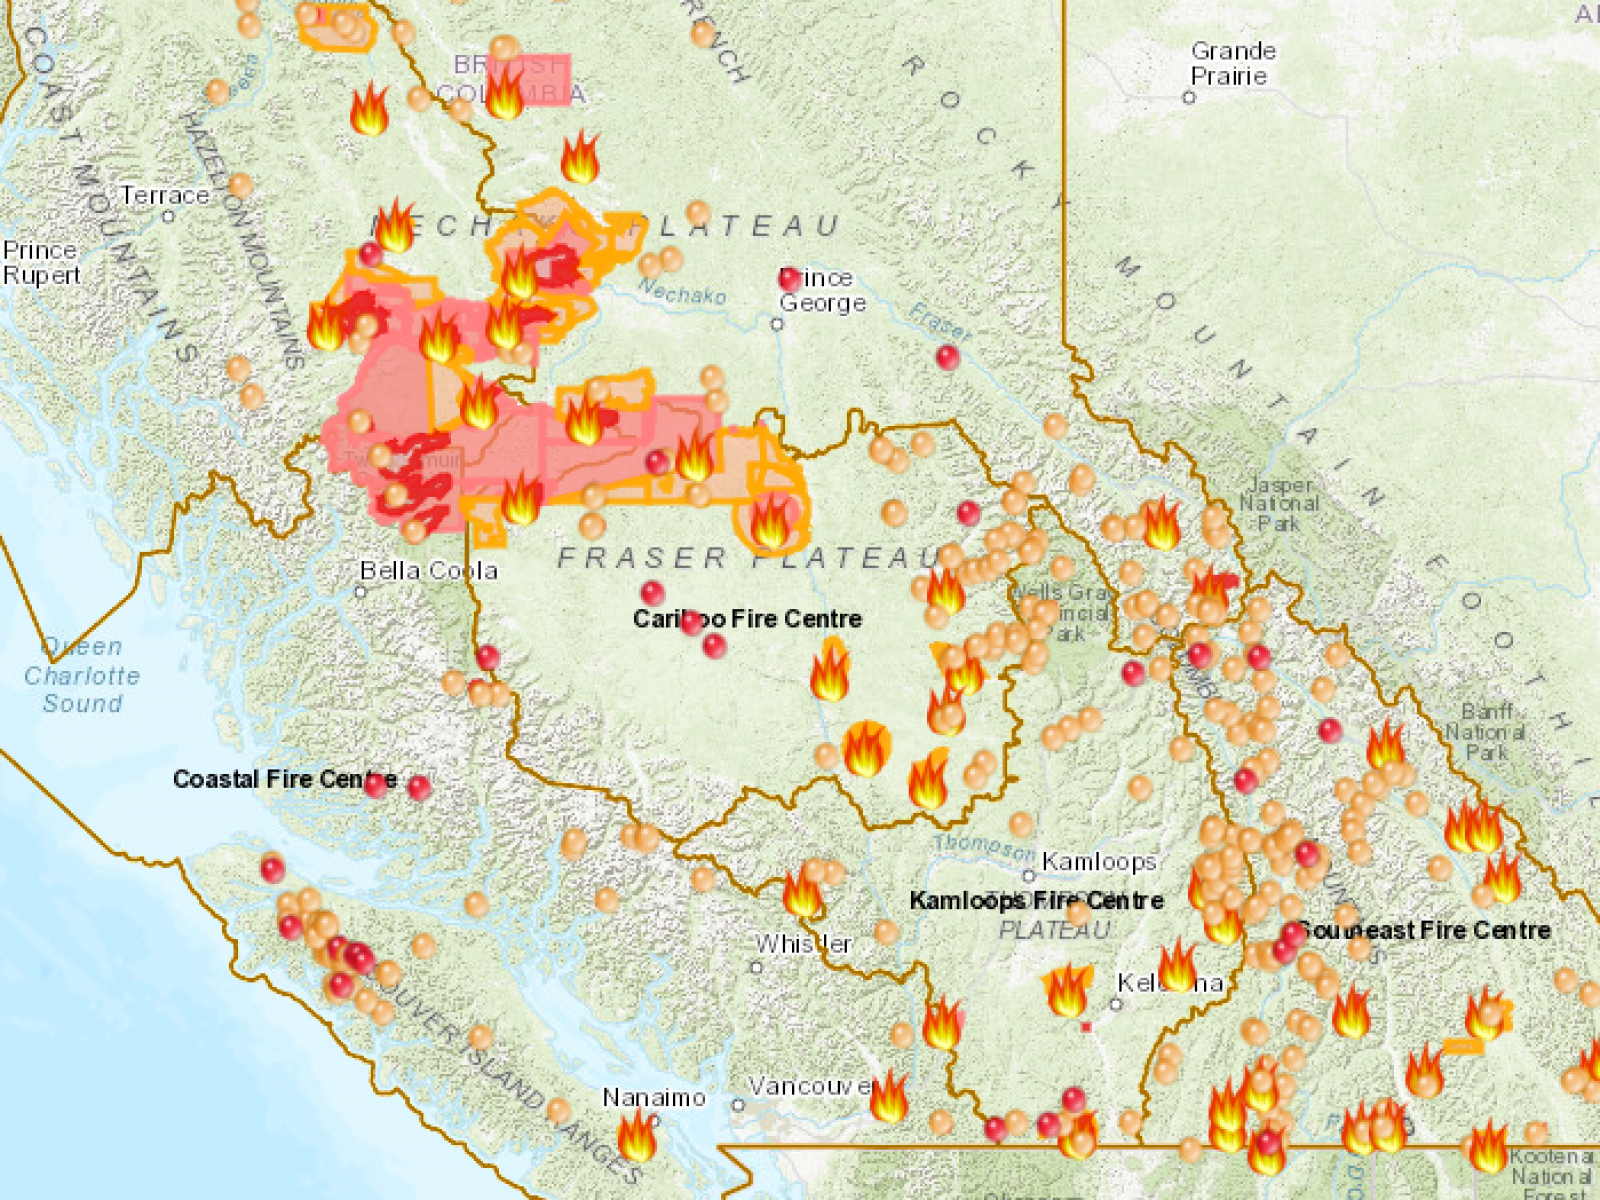 Map Of Canada British Columbia.Canada Fires 2018 B C Wildfire Map Shows Where 566 Fires Are